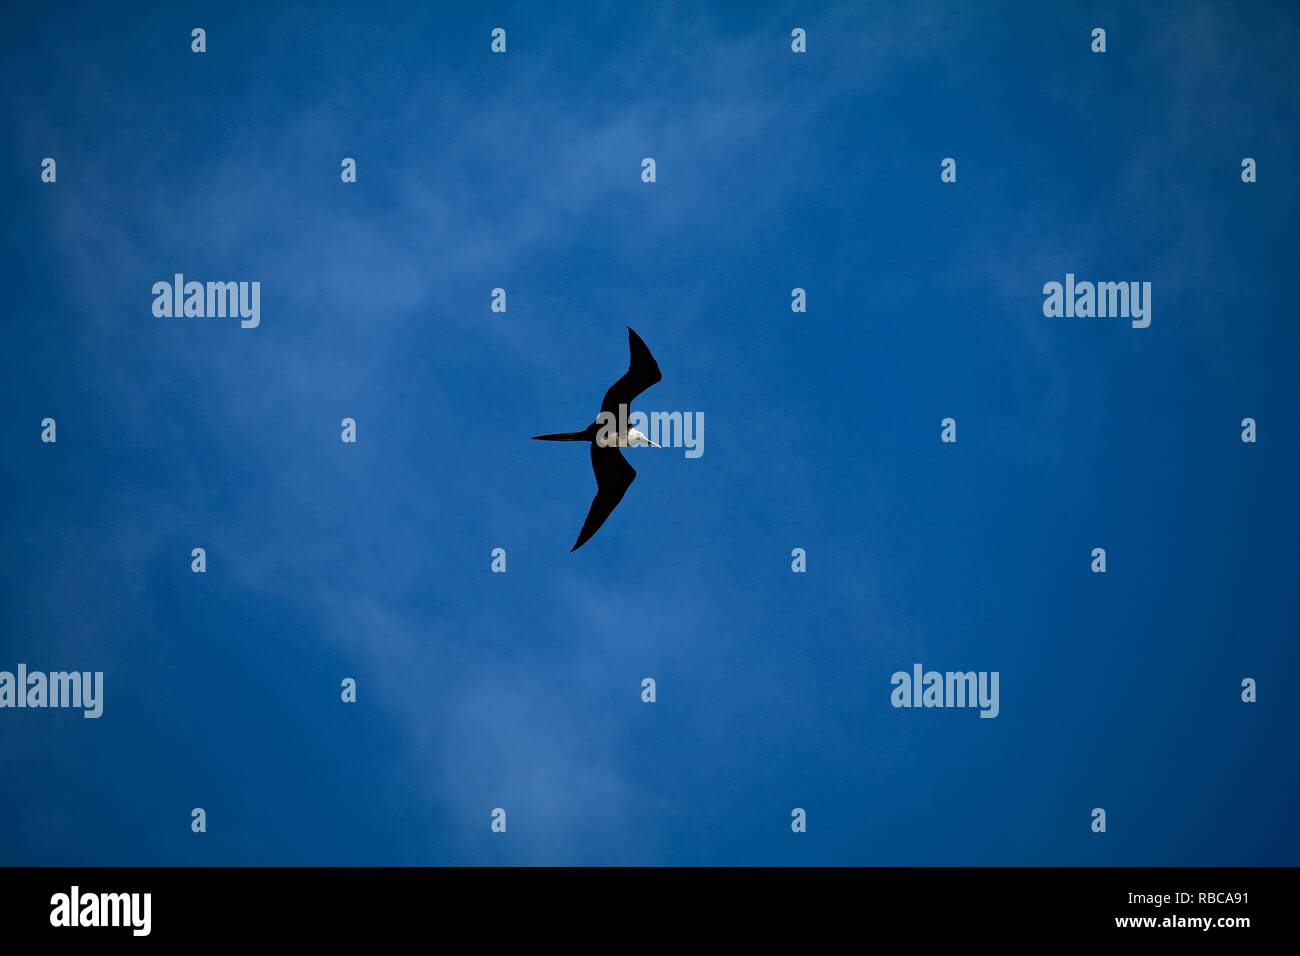 Complete freedom of a bird soaring against a deep blue sky - Stock Image